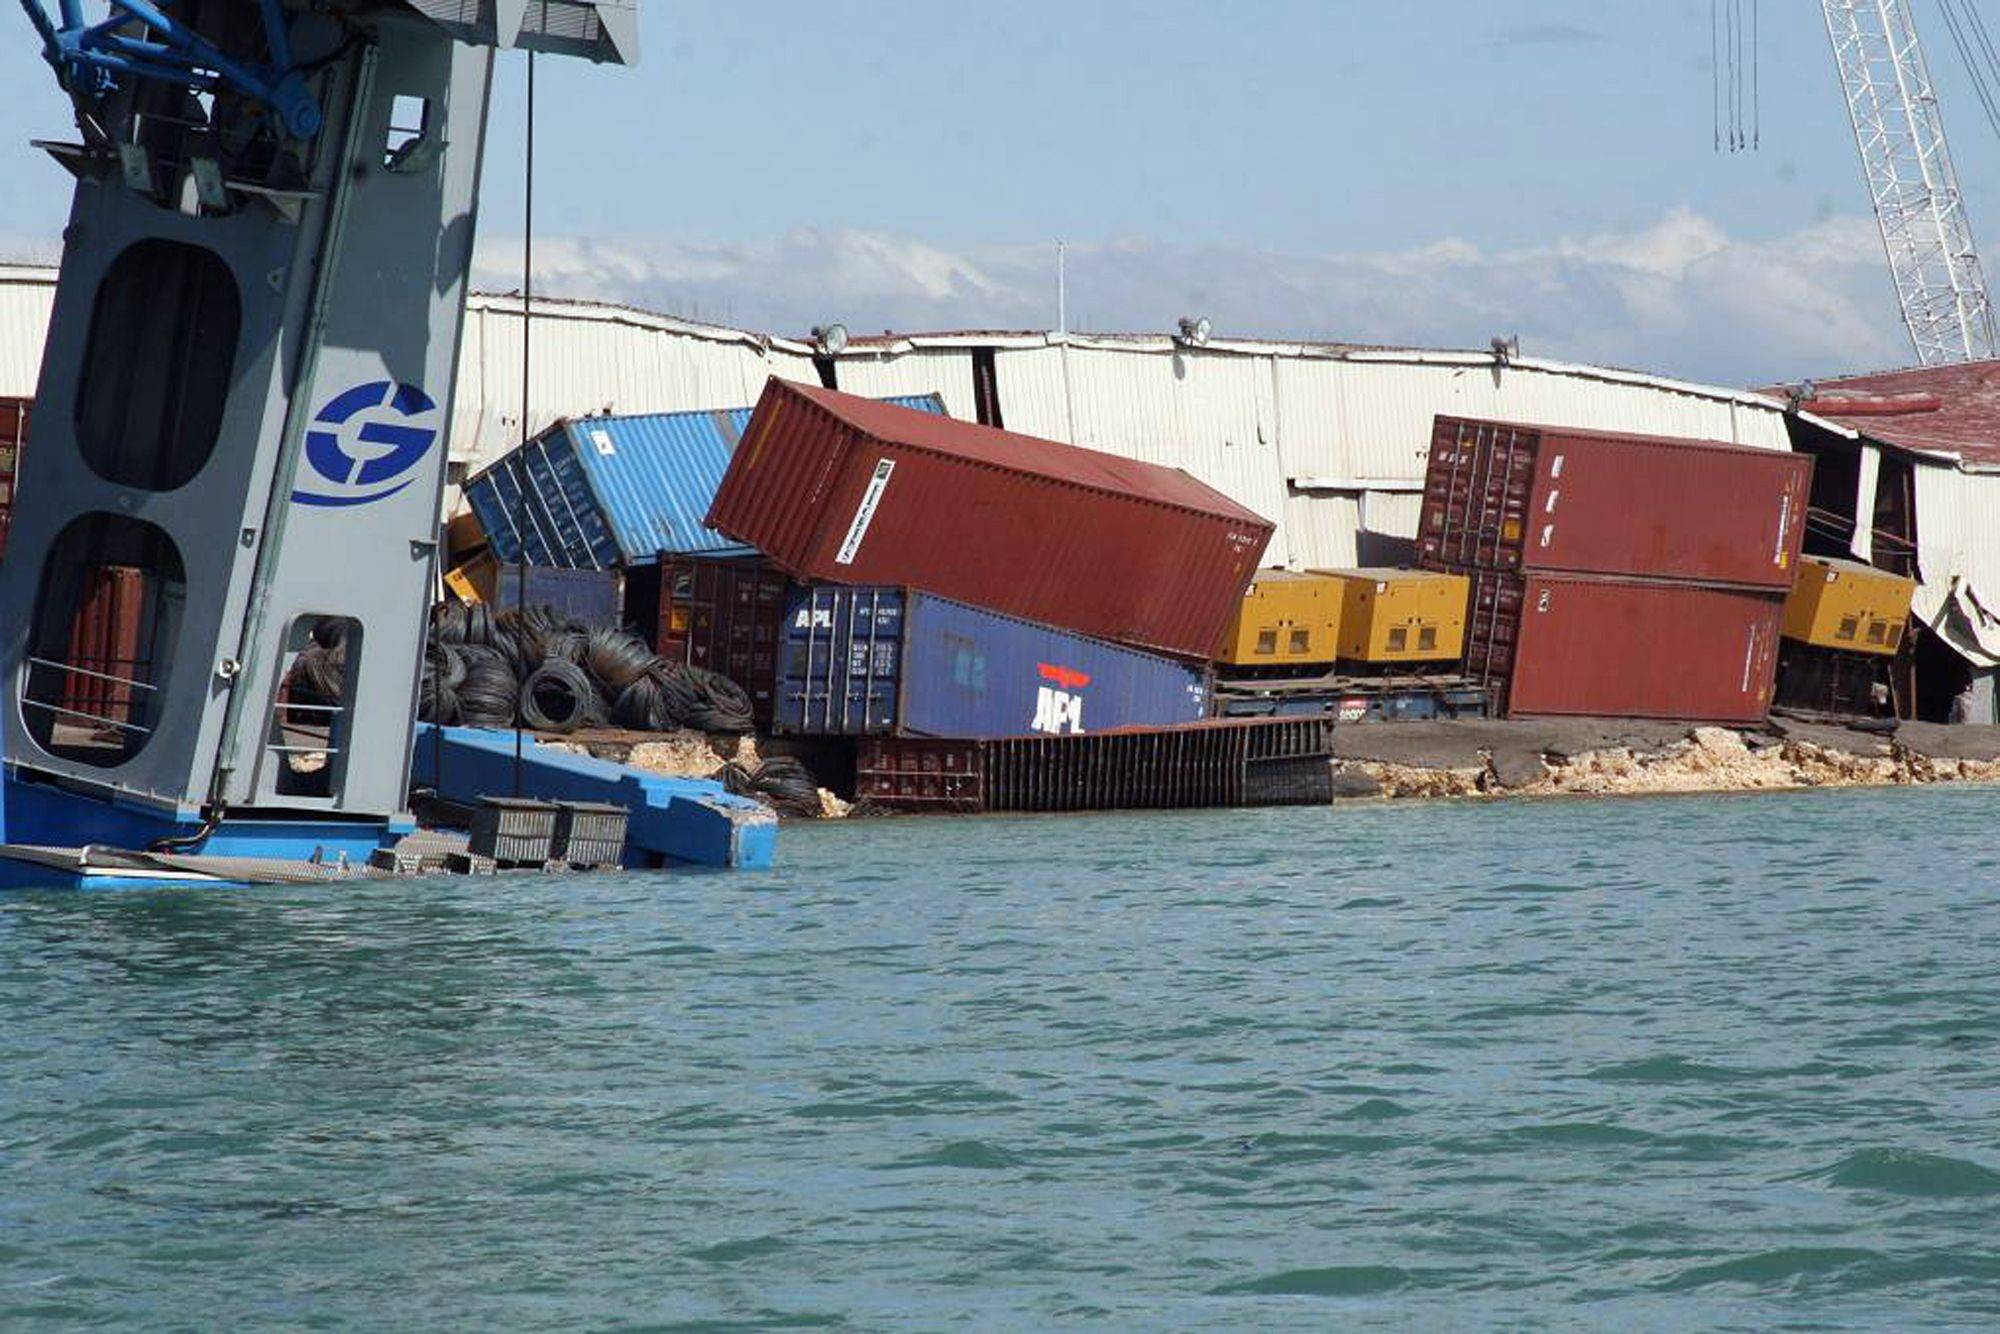 In this photo provided by the U.S. Coast Guard, containers are toppled over in the port of Port-au-Prince, Haiti, Wednesday Jan. 13, 2009 after an earthquake struck the region.